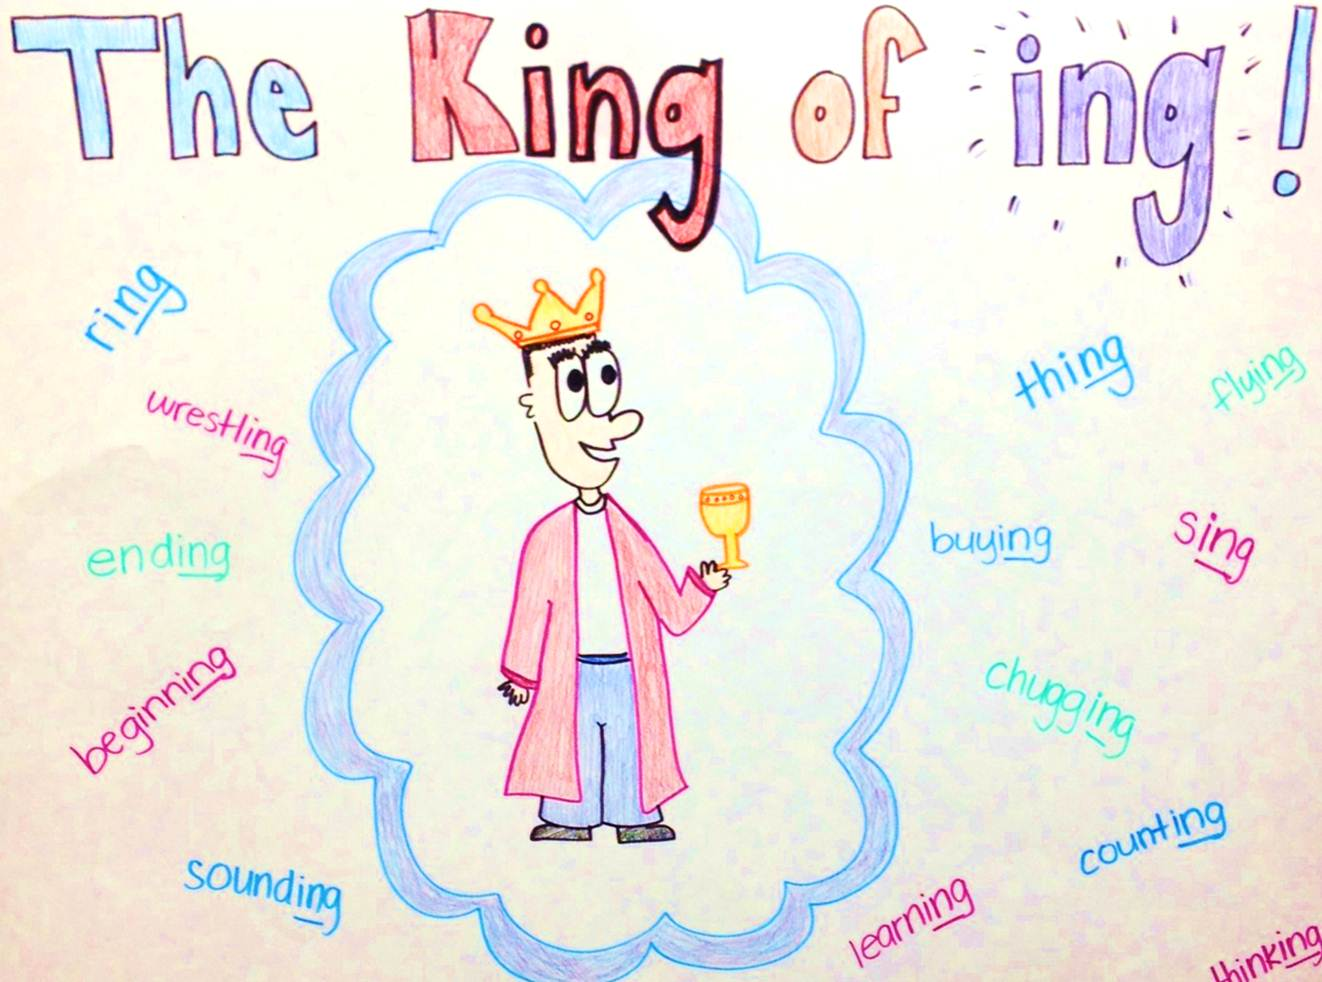 The King Of Ing